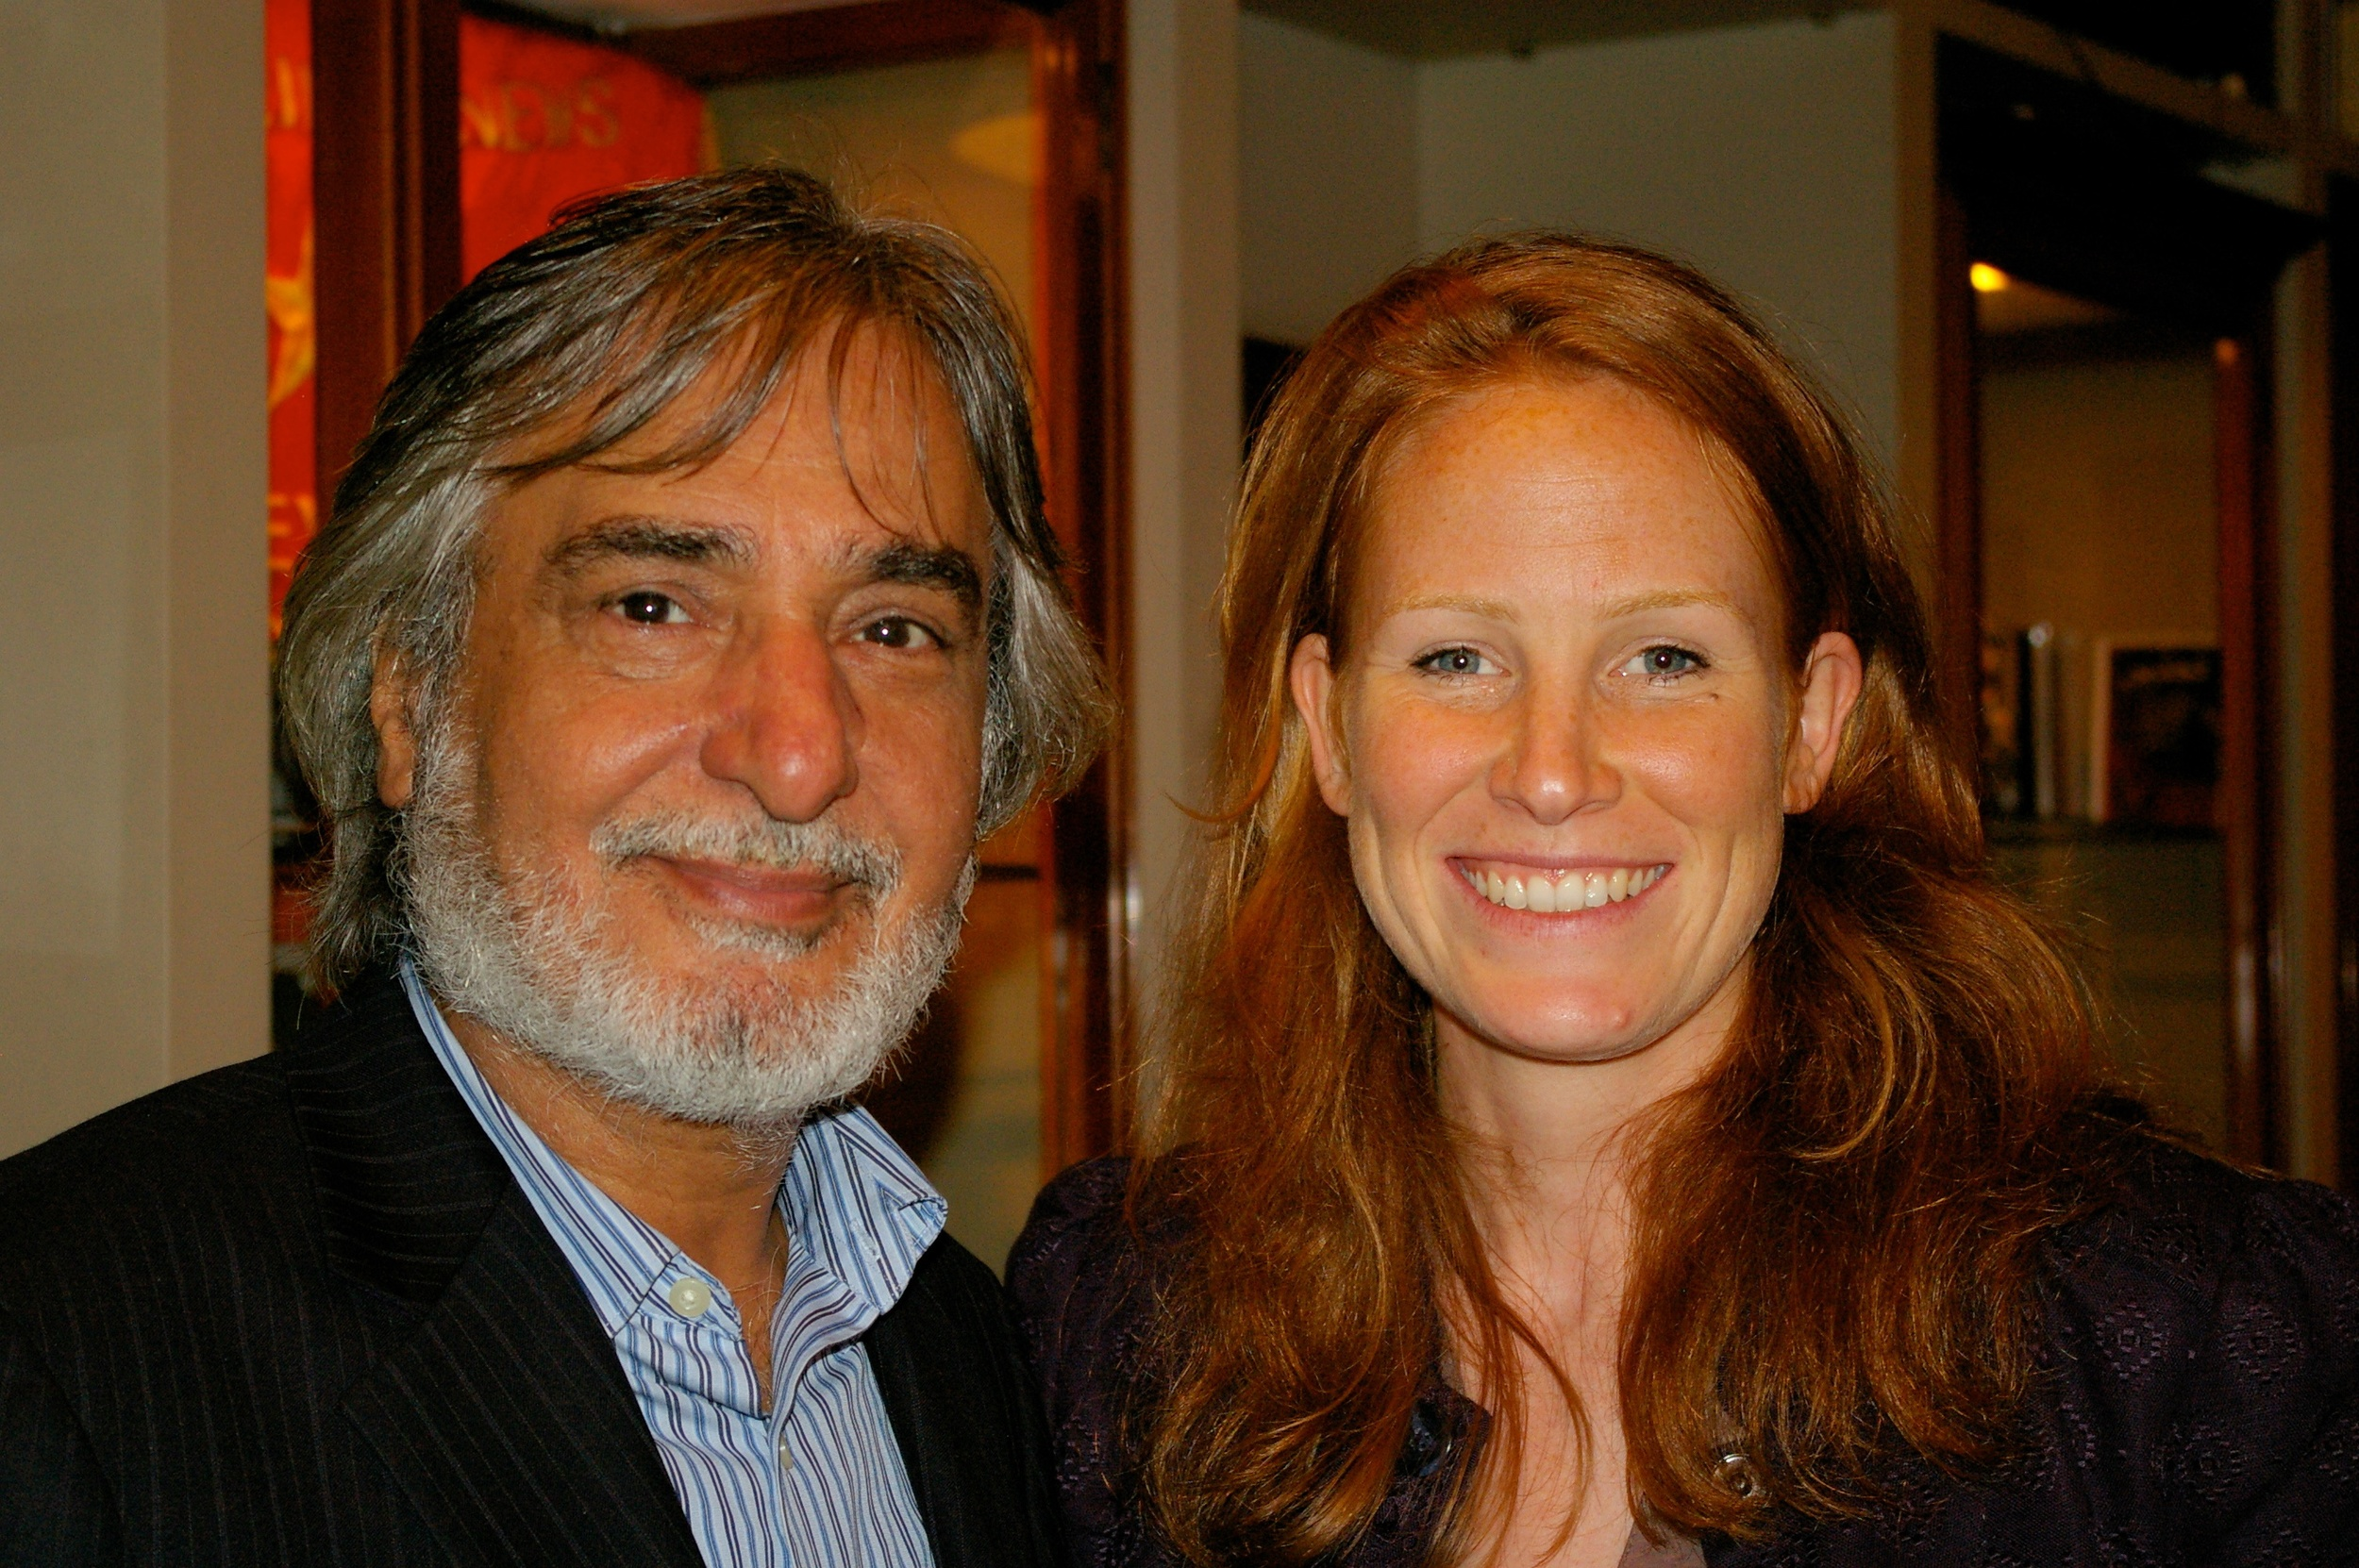 Iraqi poet Nabeel Yasin with Director Georgie Weedon